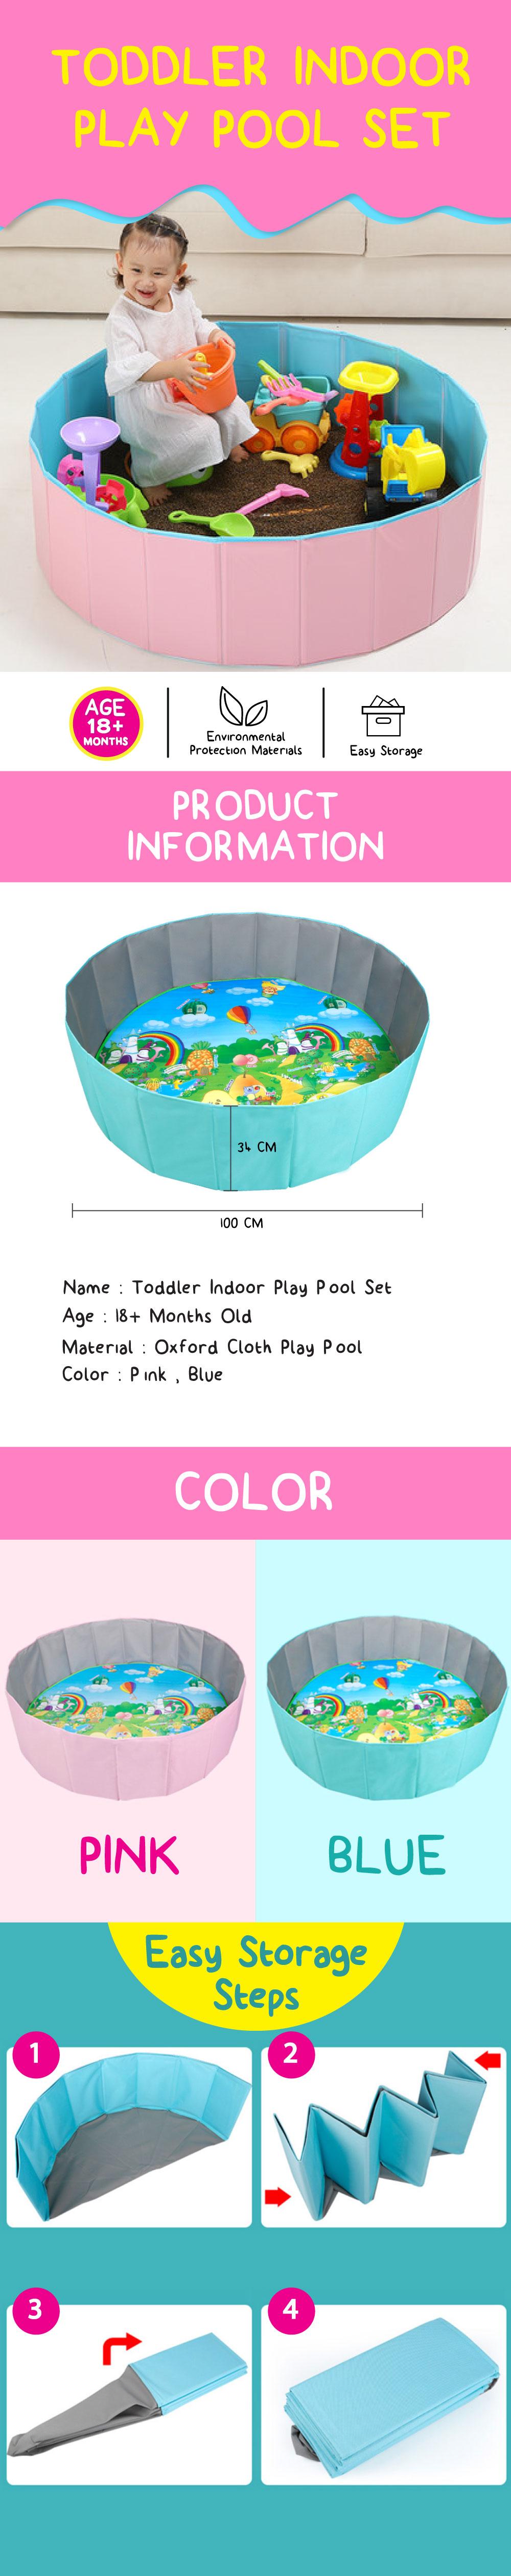 Toddler-Sand-Pool-PD_1000px-(3).jpg